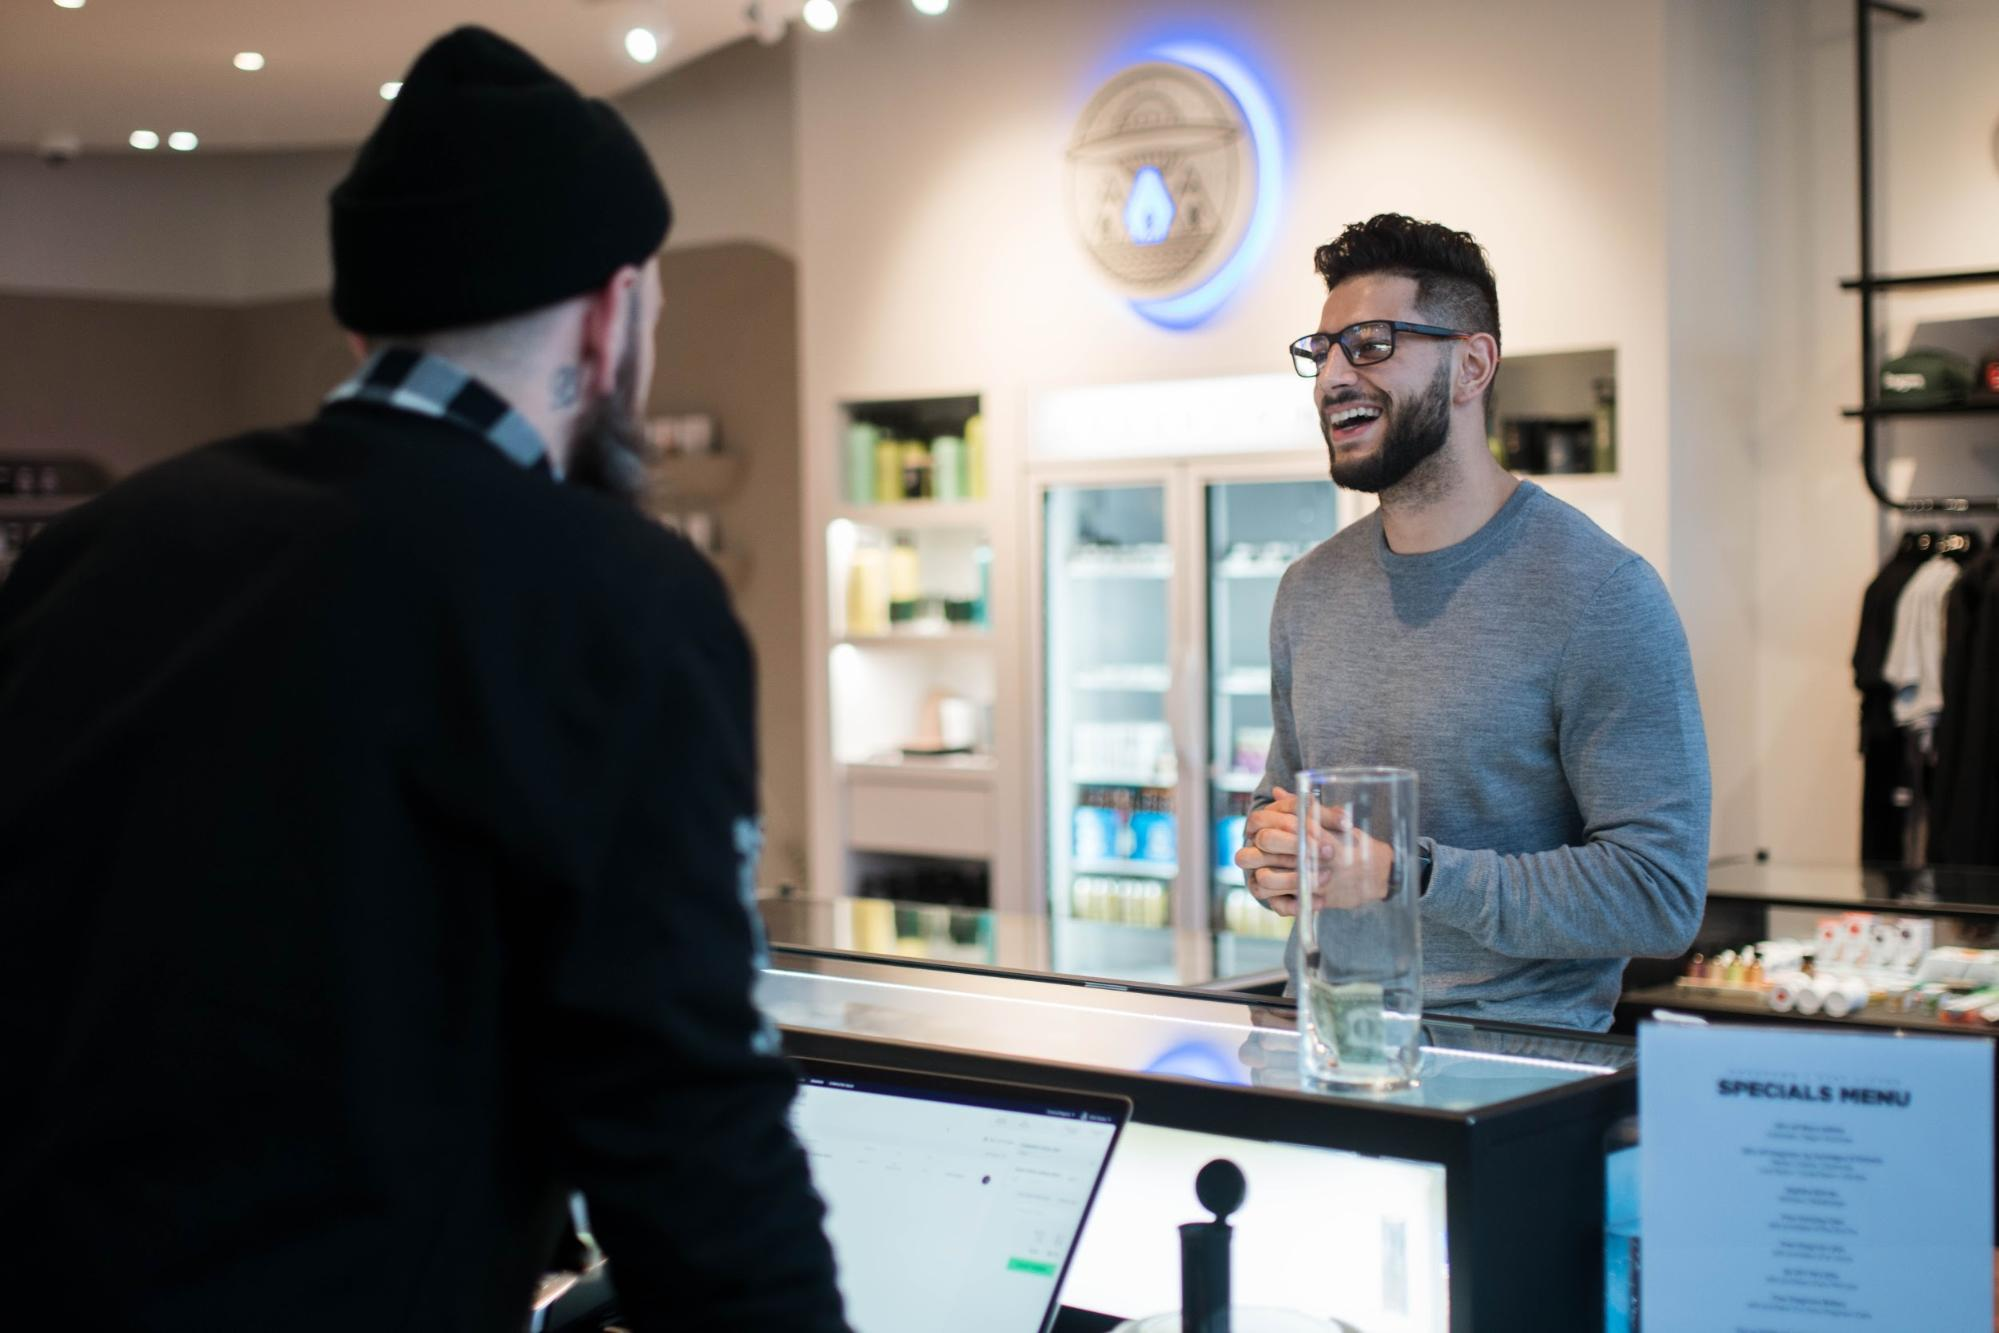 oregrown-cannabis-dispensary-portland